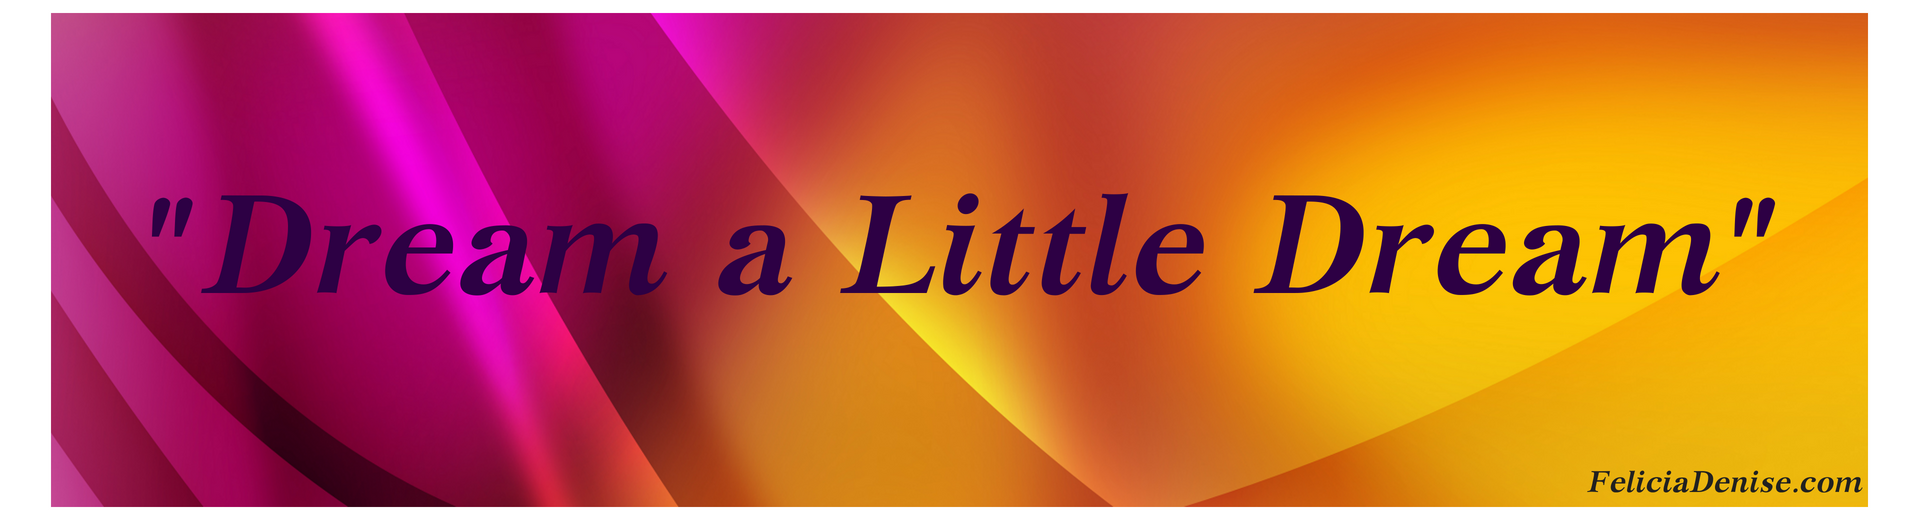 Dream a Little Dream banner